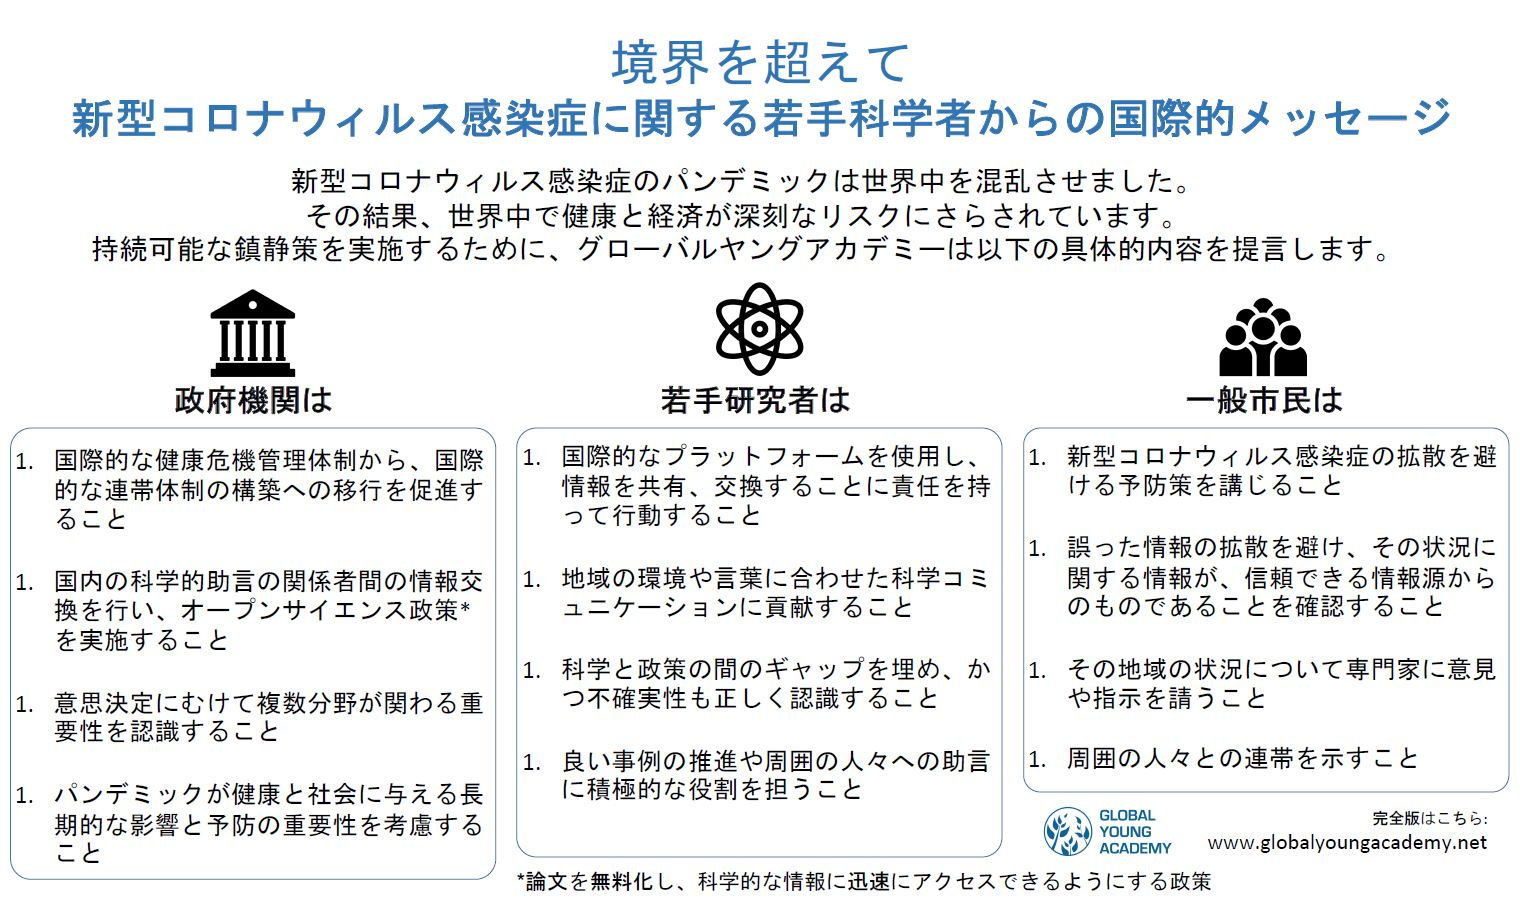 GYA COVID-19 statement infographic - Japanese version